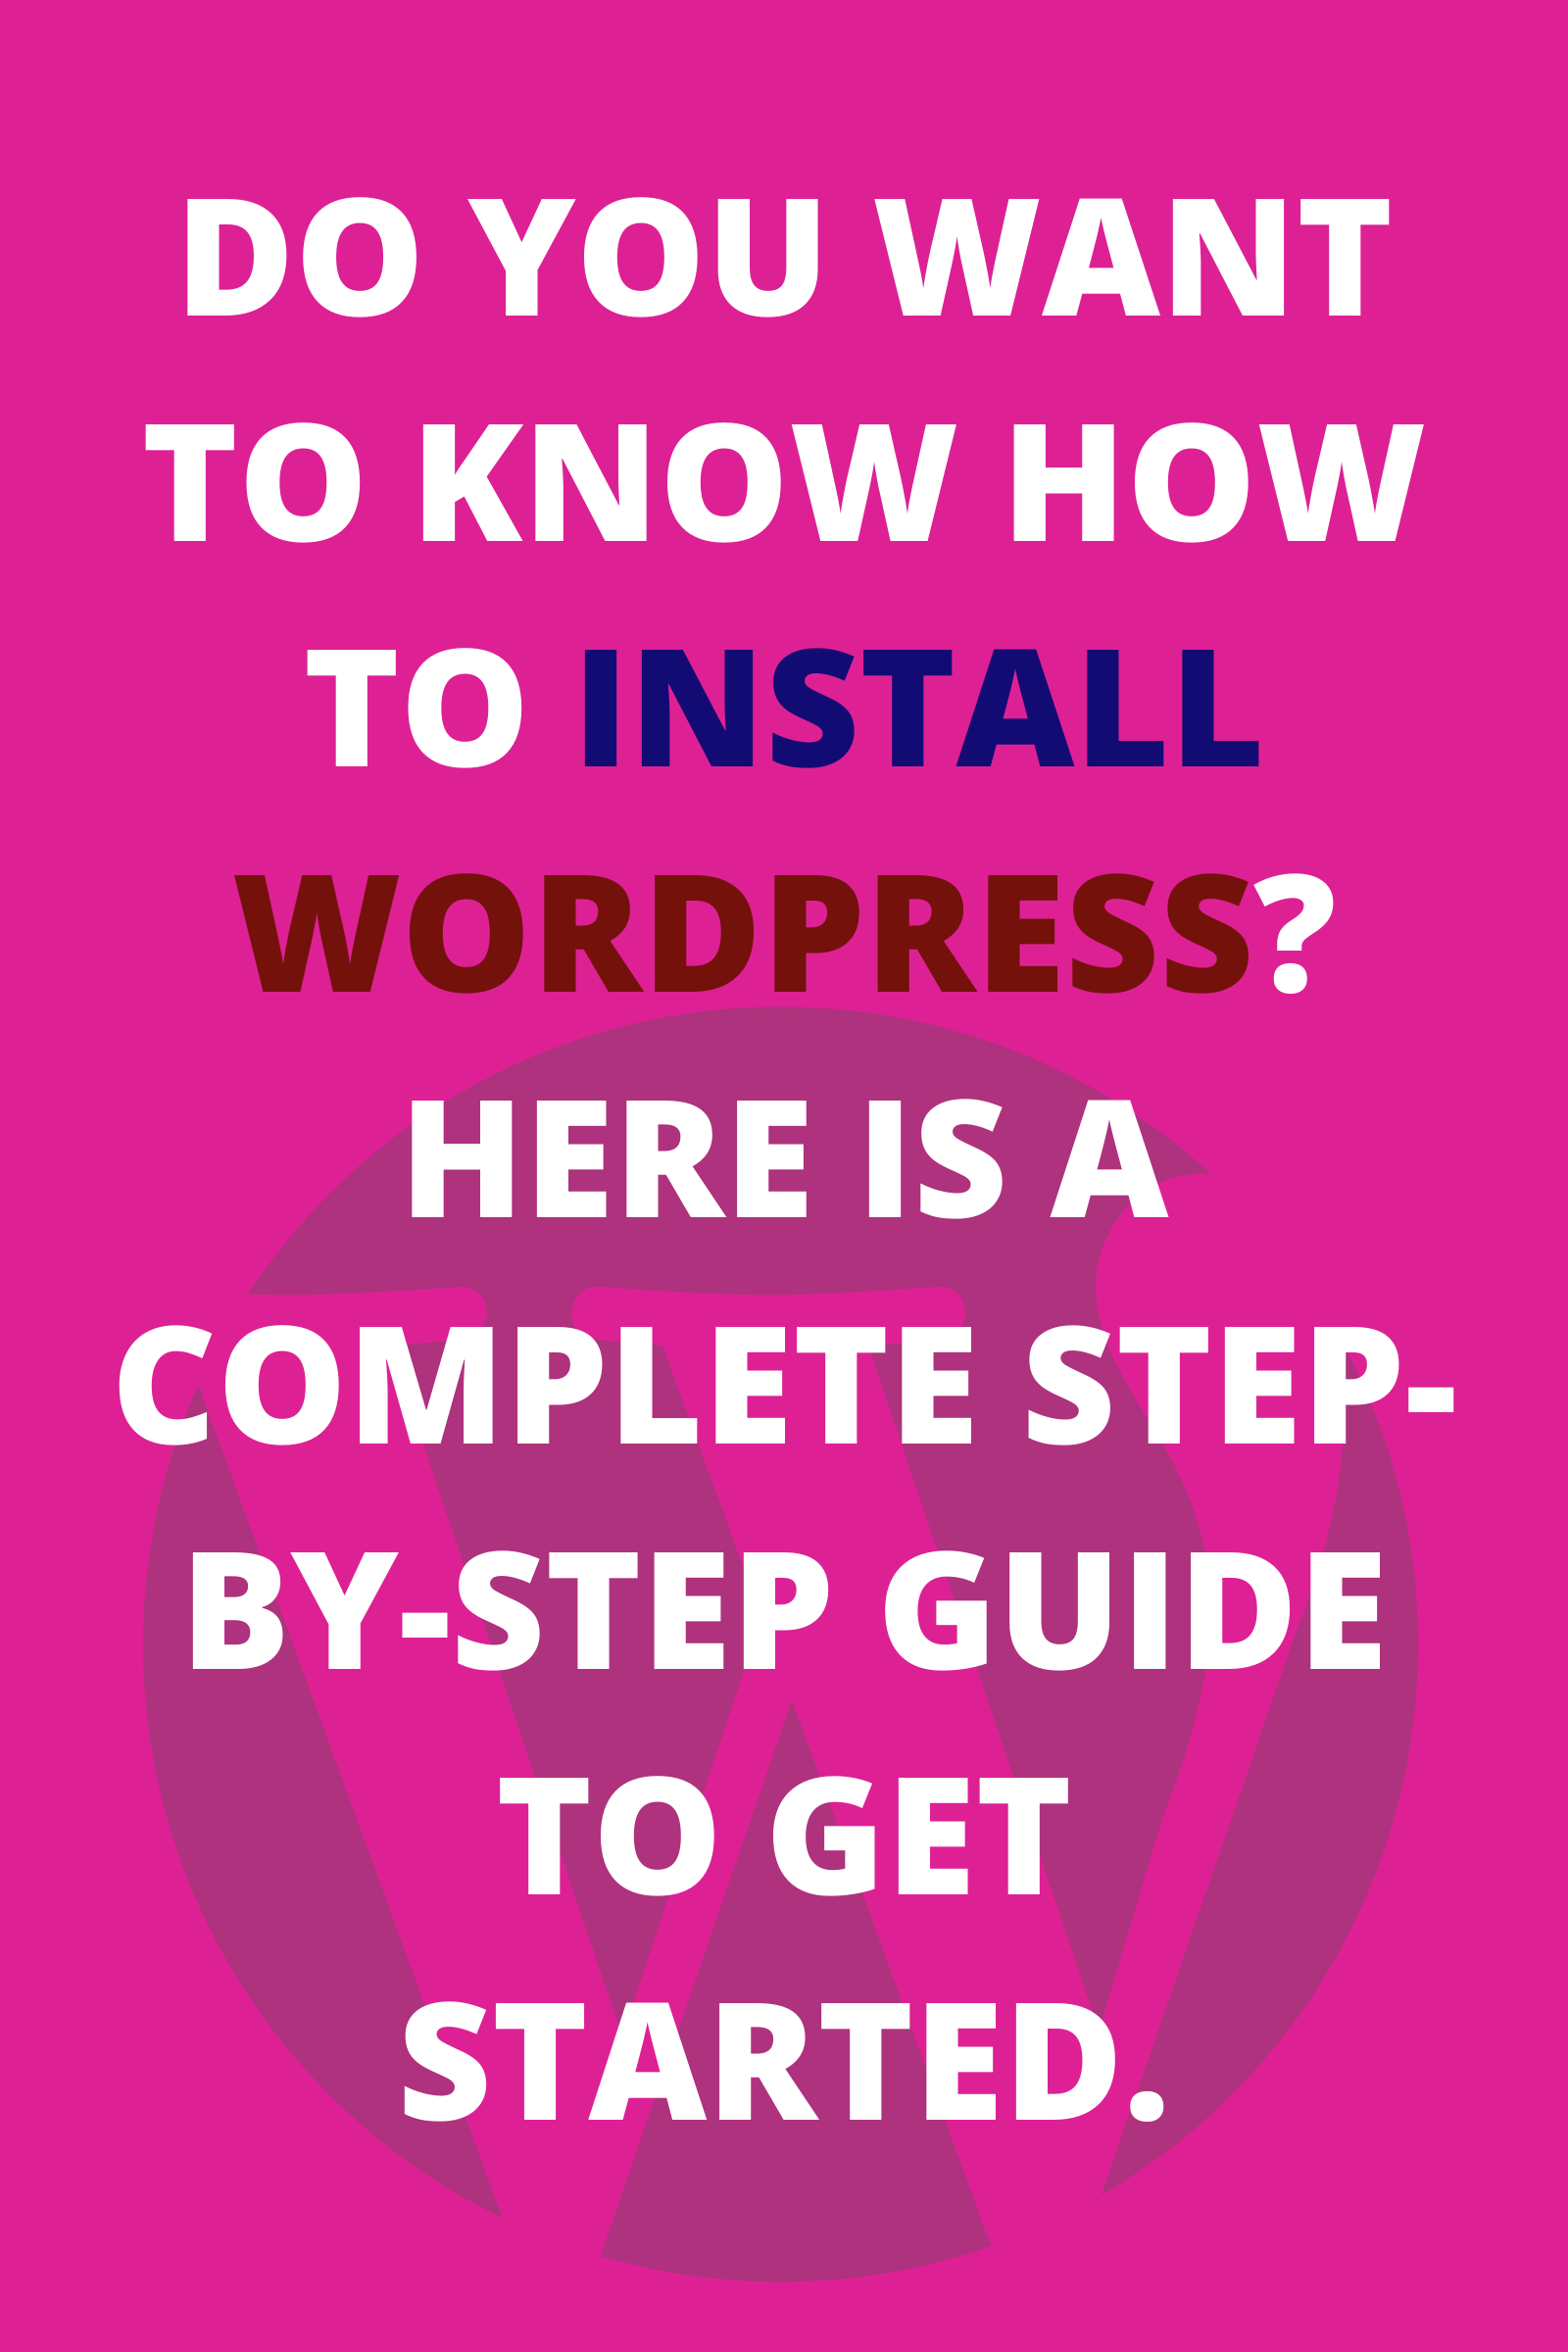 Do you want to know how to Install WordPress_ Here is a Complete Step-by-Step Guide to Get Started.